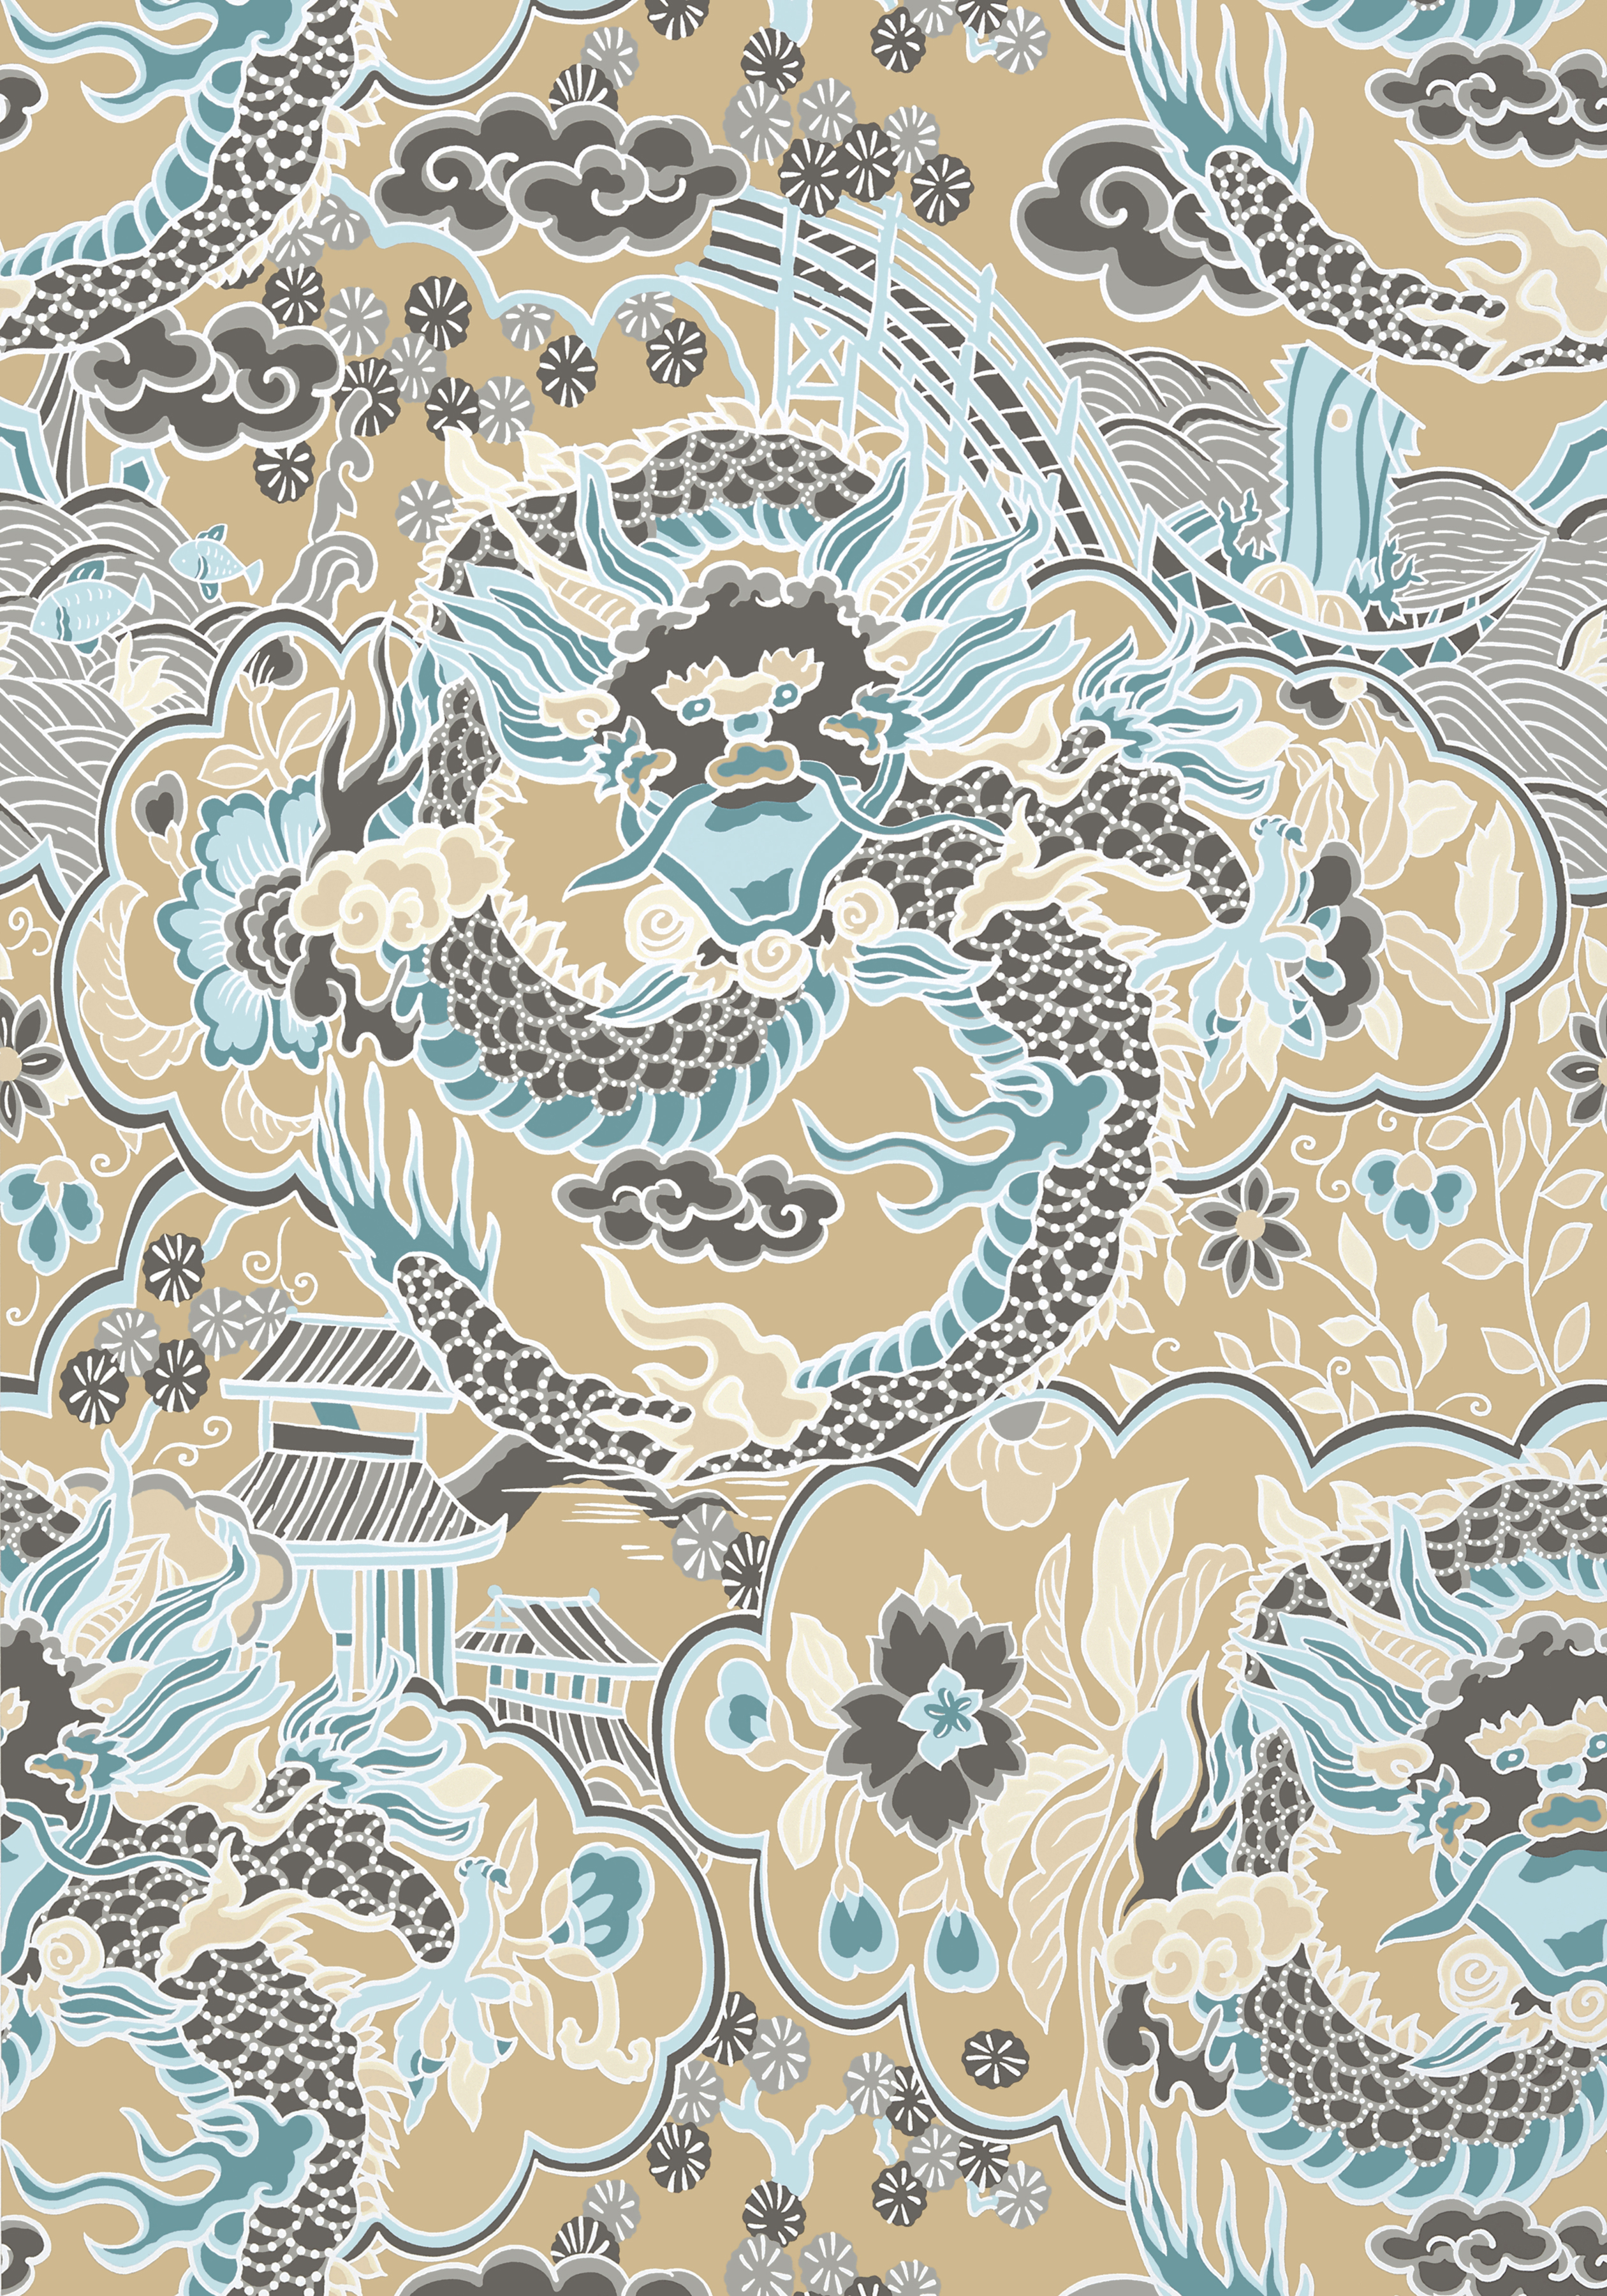 IMPERIAL-DRAGON-Aqua-and-Beige-T-Collection-Imperial-Garden-from-Thibaut-wallpaper-wp5406160